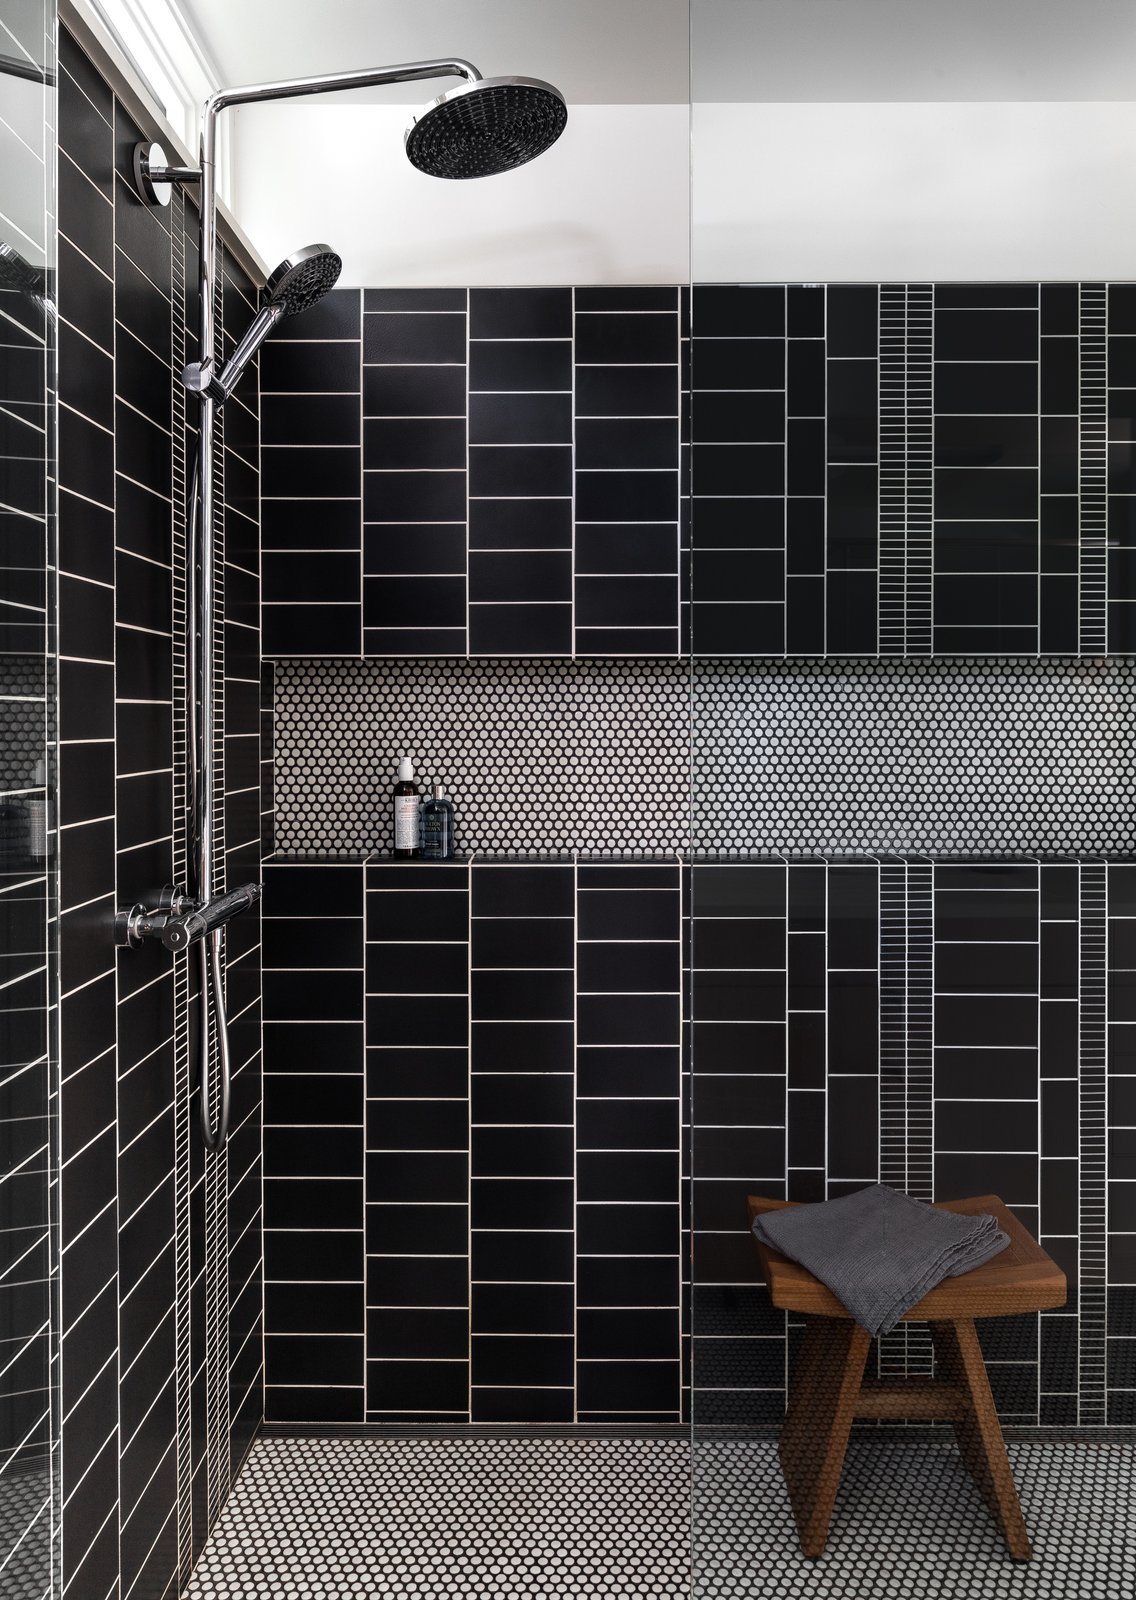 Bath Room, Ceramic Tile Floor, Open Shower, and Porcelain Tile Wall Master Bath shower  Tree House by DeForest Architects